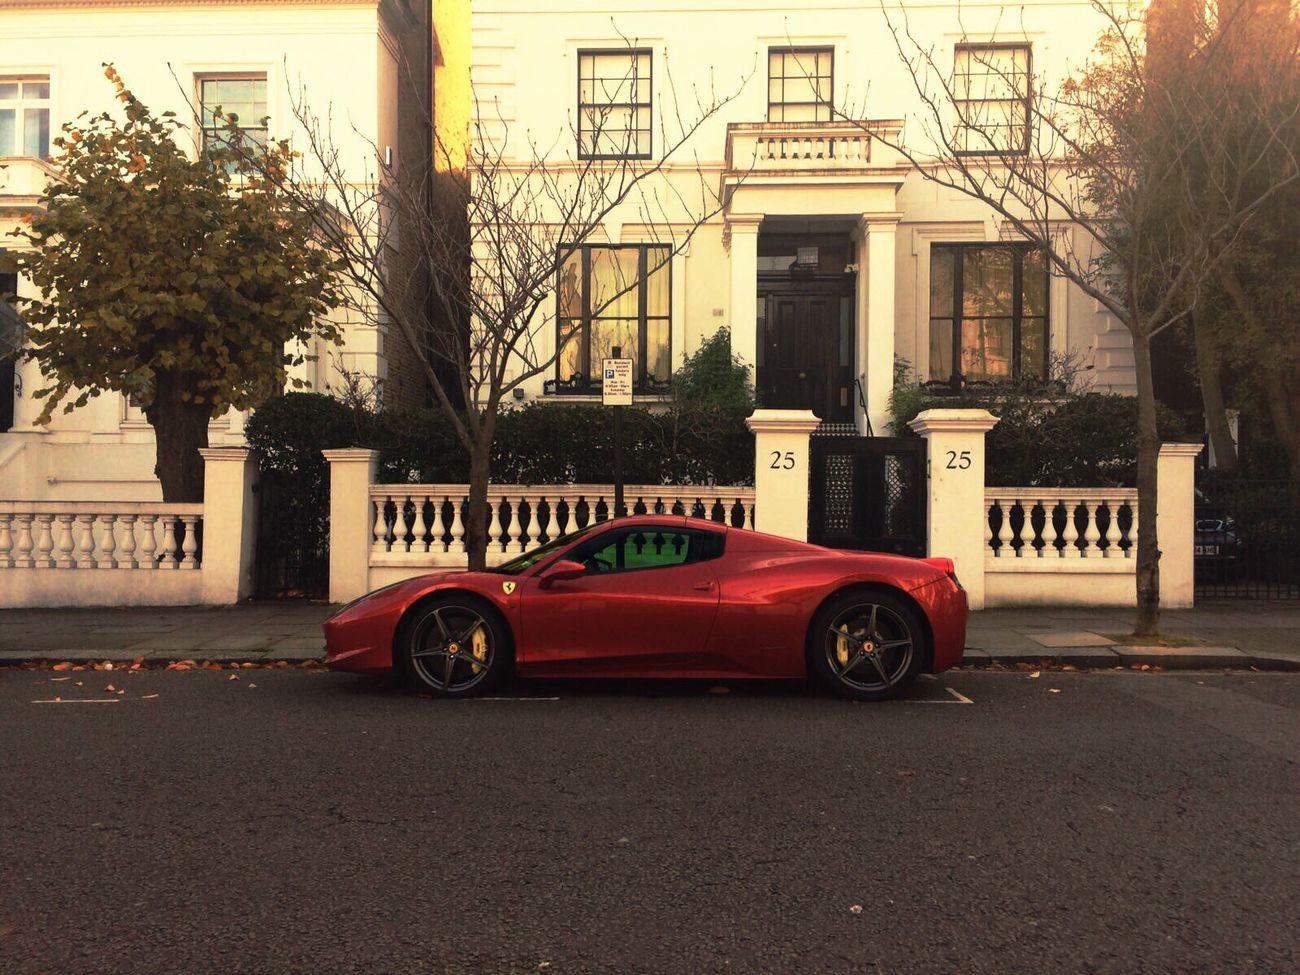 City London Uk Car Ferrari Money Street Cash Goodlife Expensive Supercars Kensington Sunny Millionaire Billionaire  Outdoors Building Exterior Architecture Tree No People Kensington City Great Britain